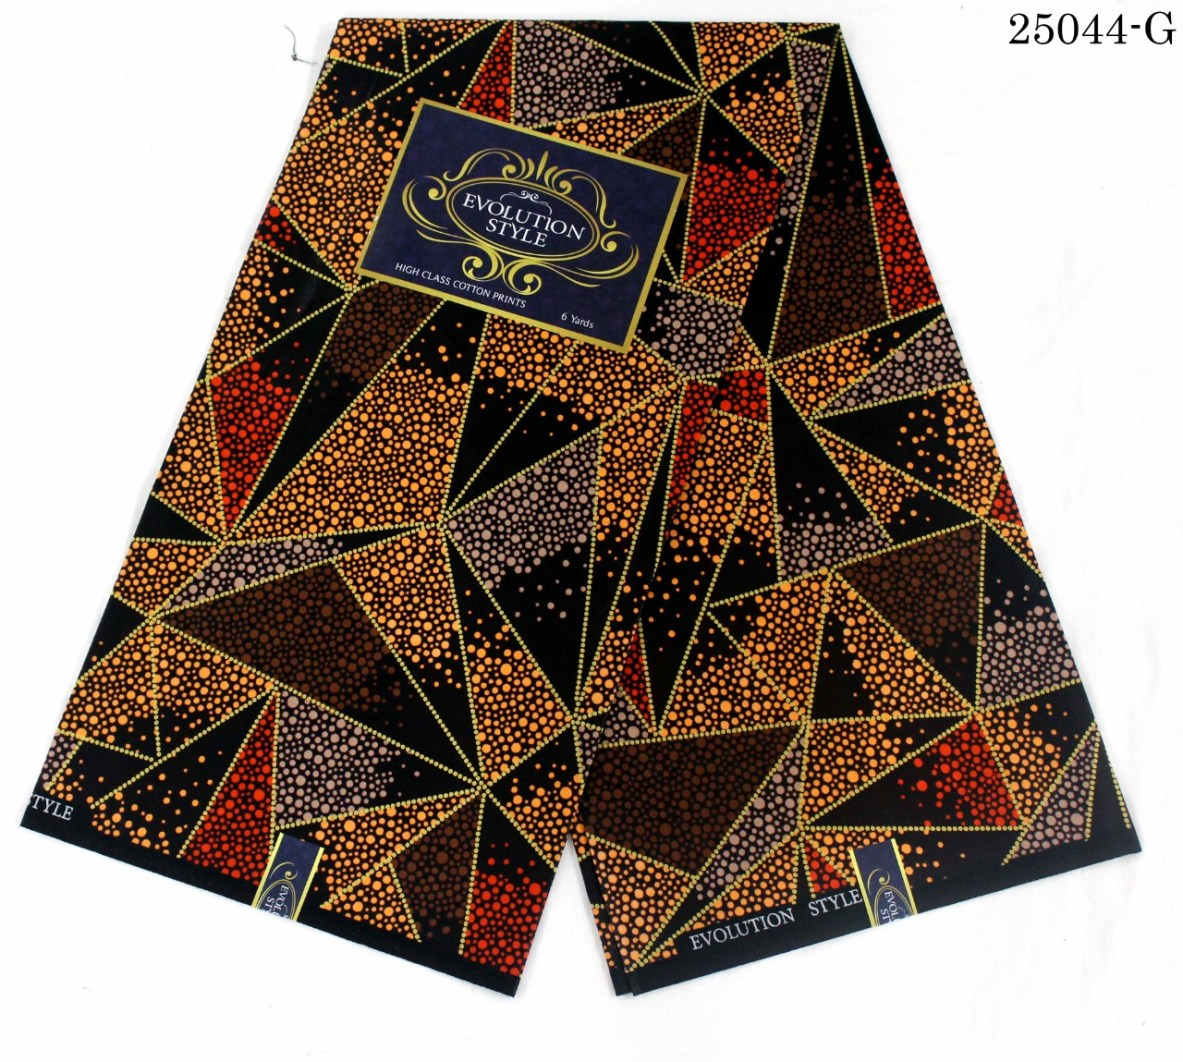 Evolution ankara fabric brown and dotted yellow-red colour pattern